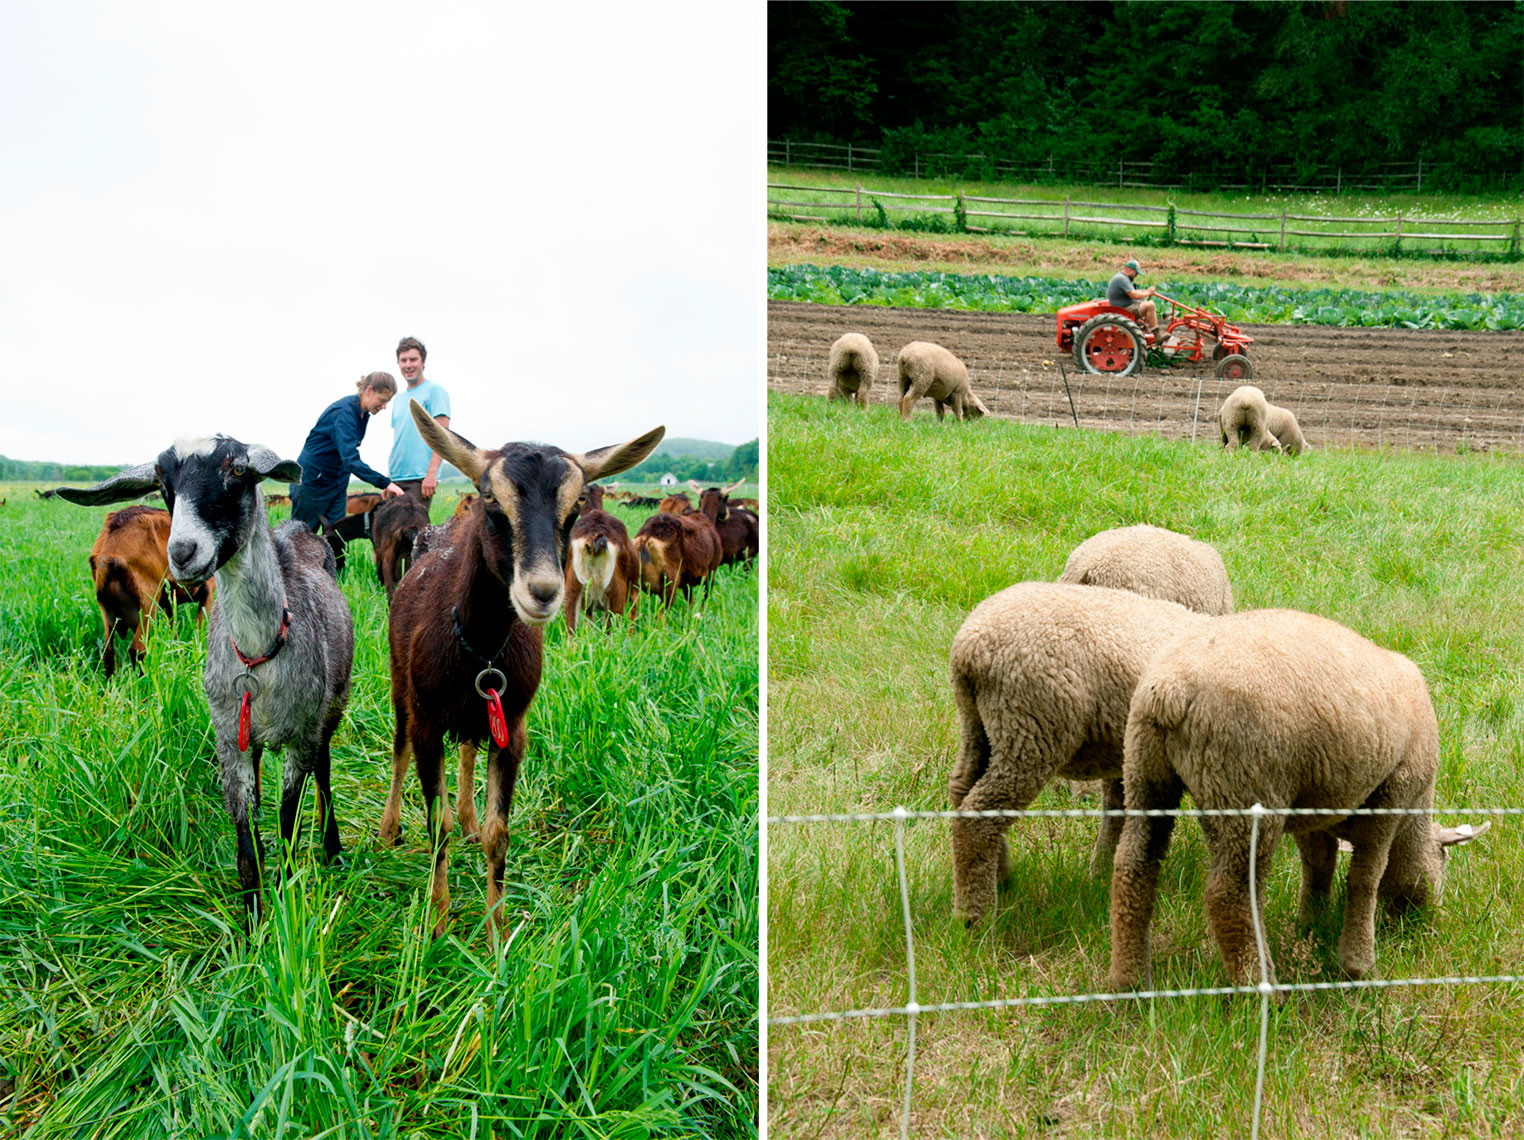 Consider Bardwell Farm and Annandale Farm